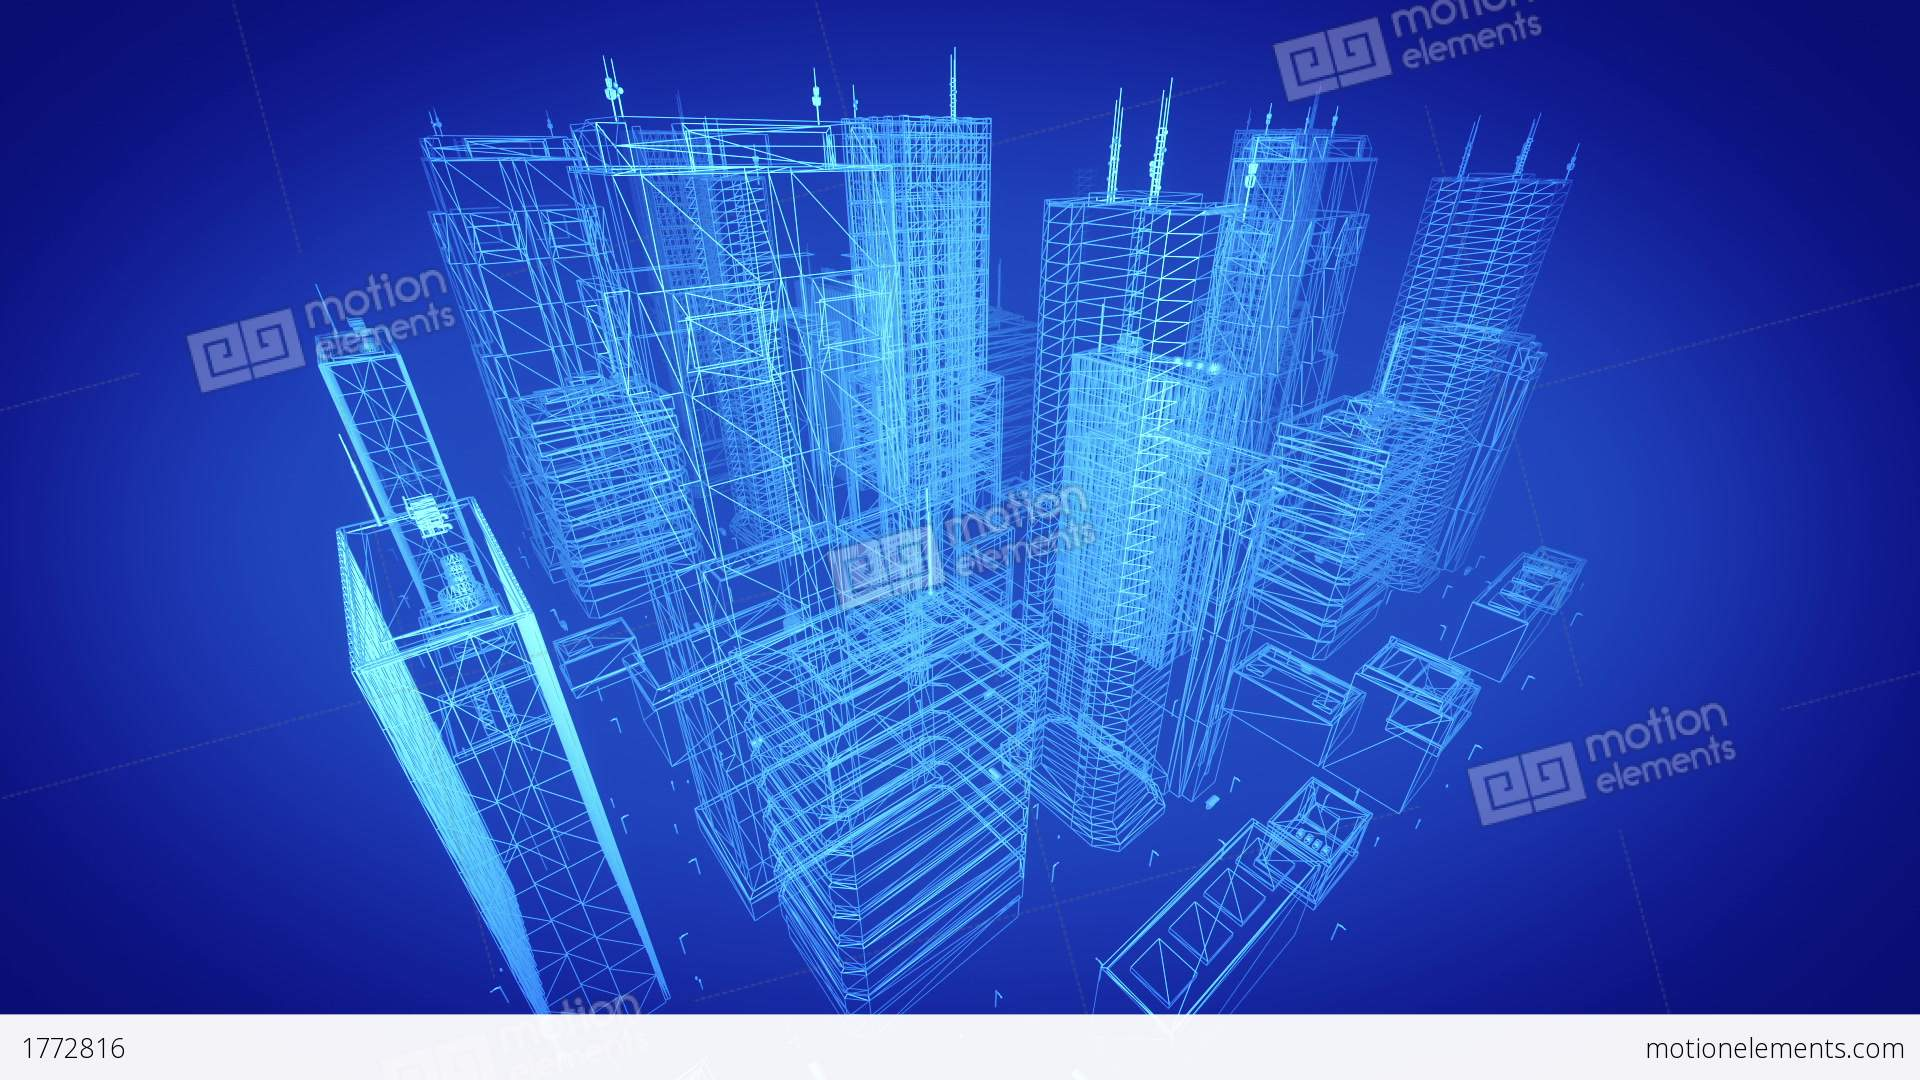 Architectural Blueprint Of Contemporary Buildings Blue Tint Seo